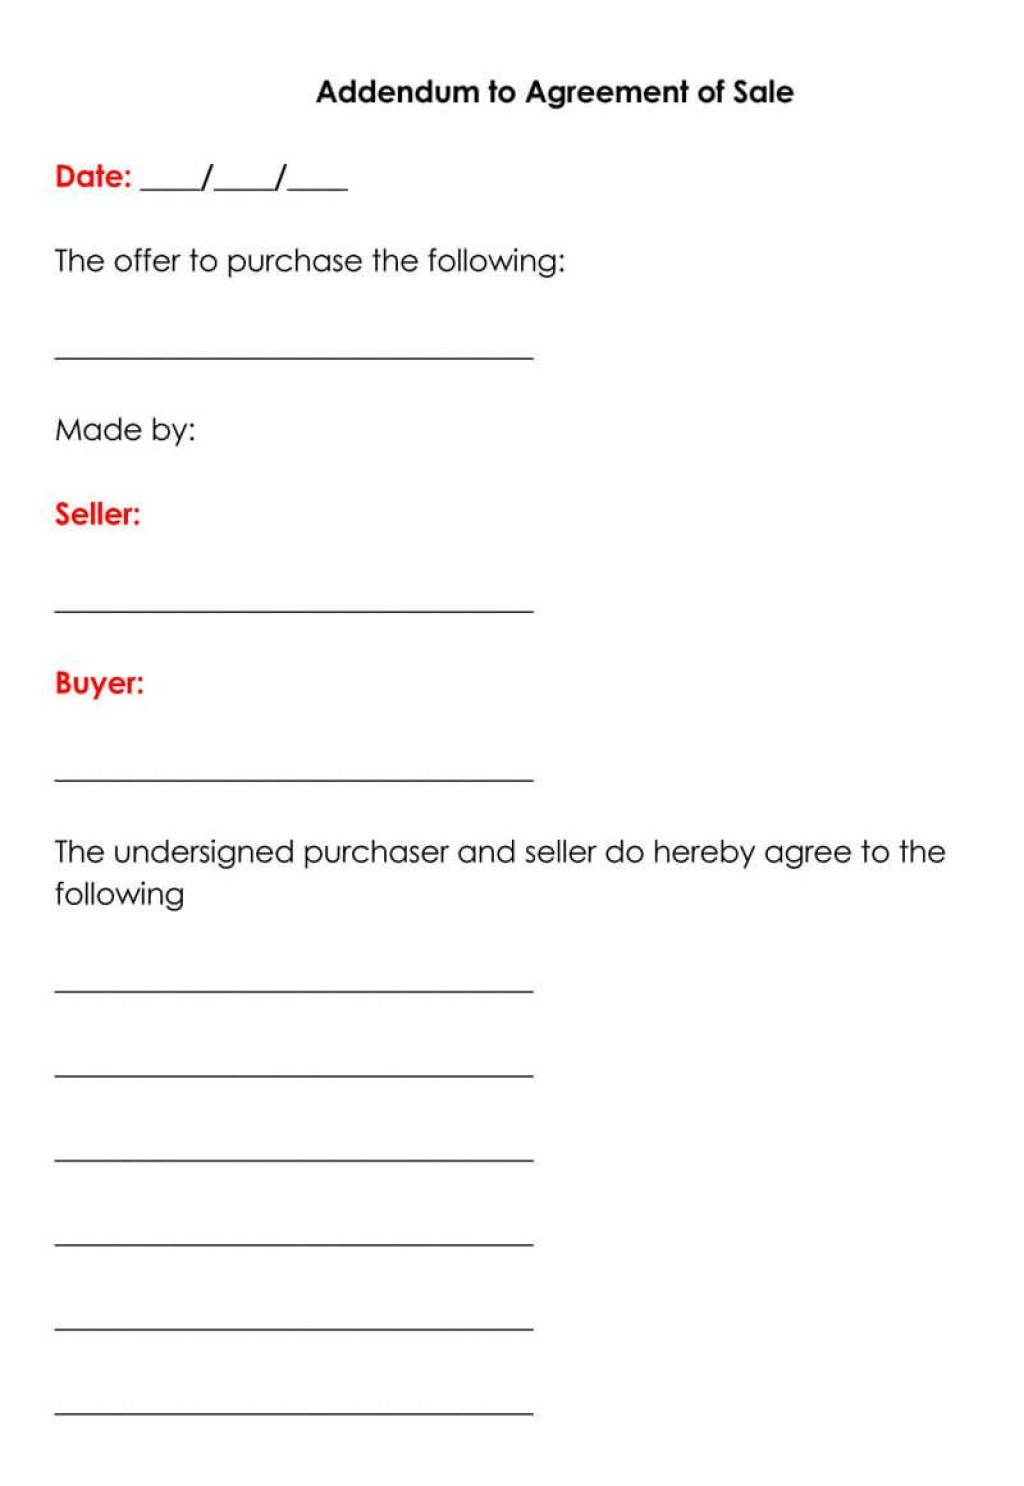 004 Stirring Sale Agreement Template Free Idea  Share Australia Word Busines Download South AfricaLarge